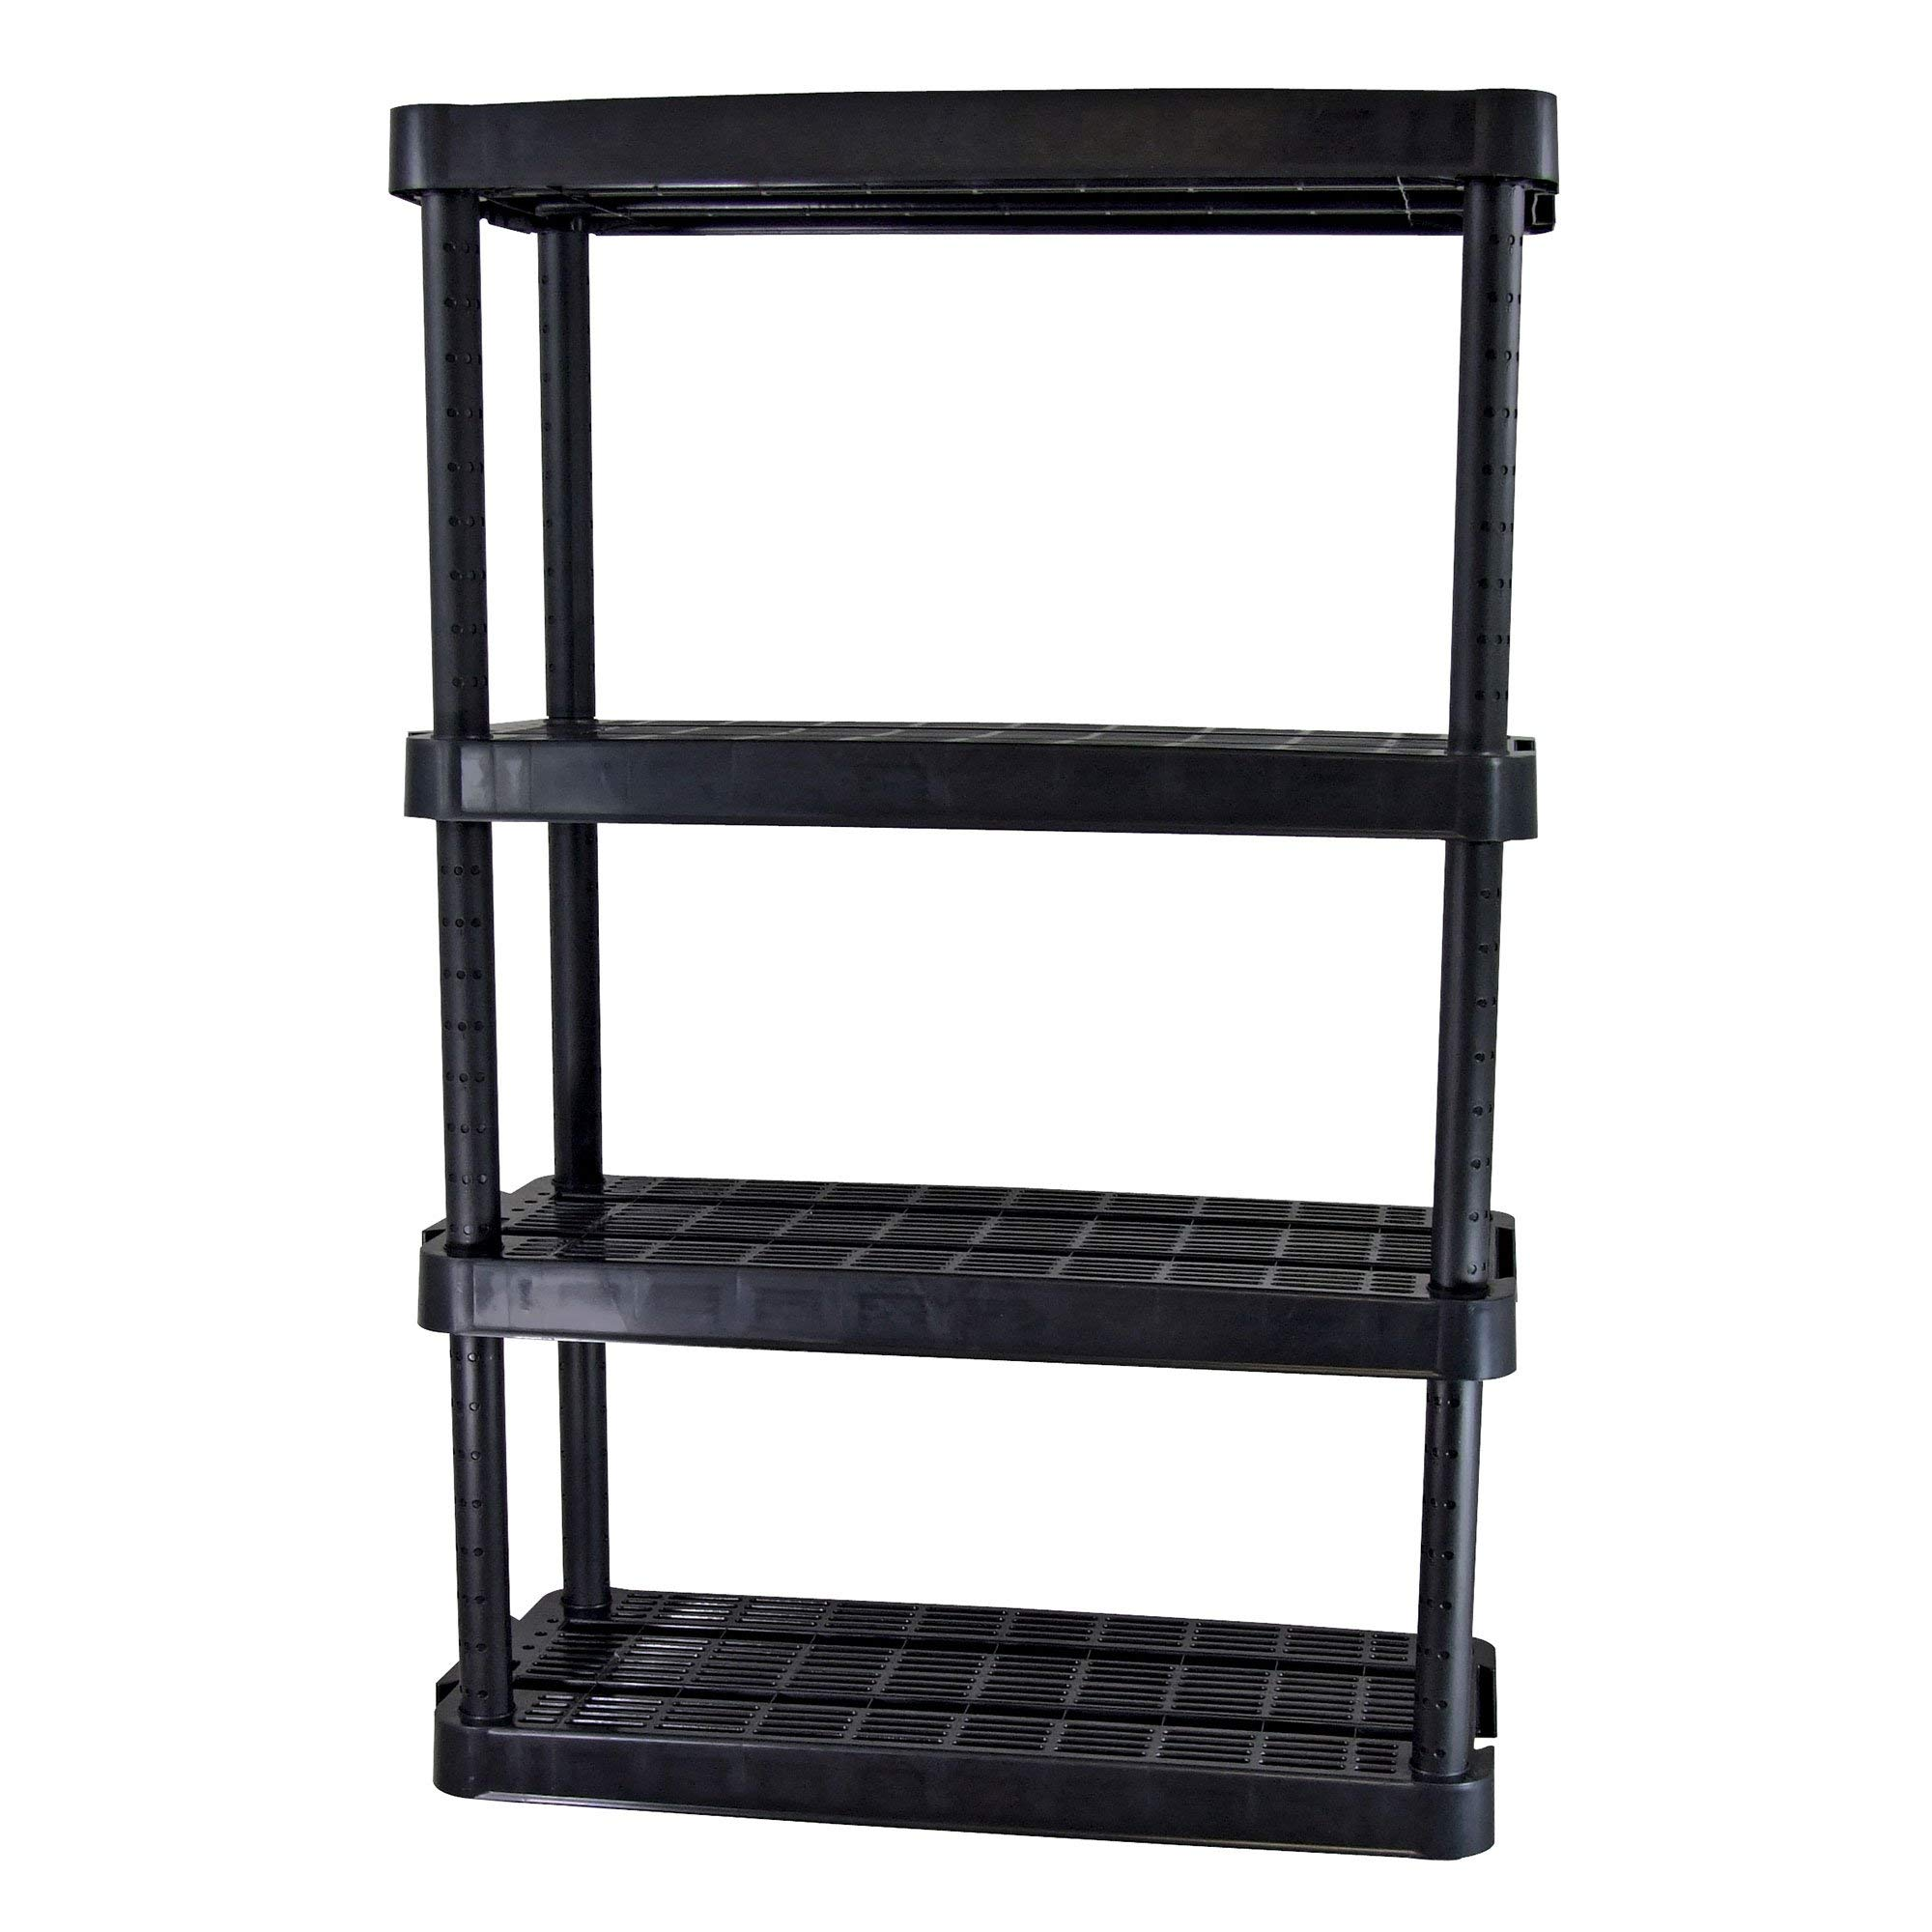 Adjustable 4-Shelf Medium Duty Shelving Unit by Gracious Living